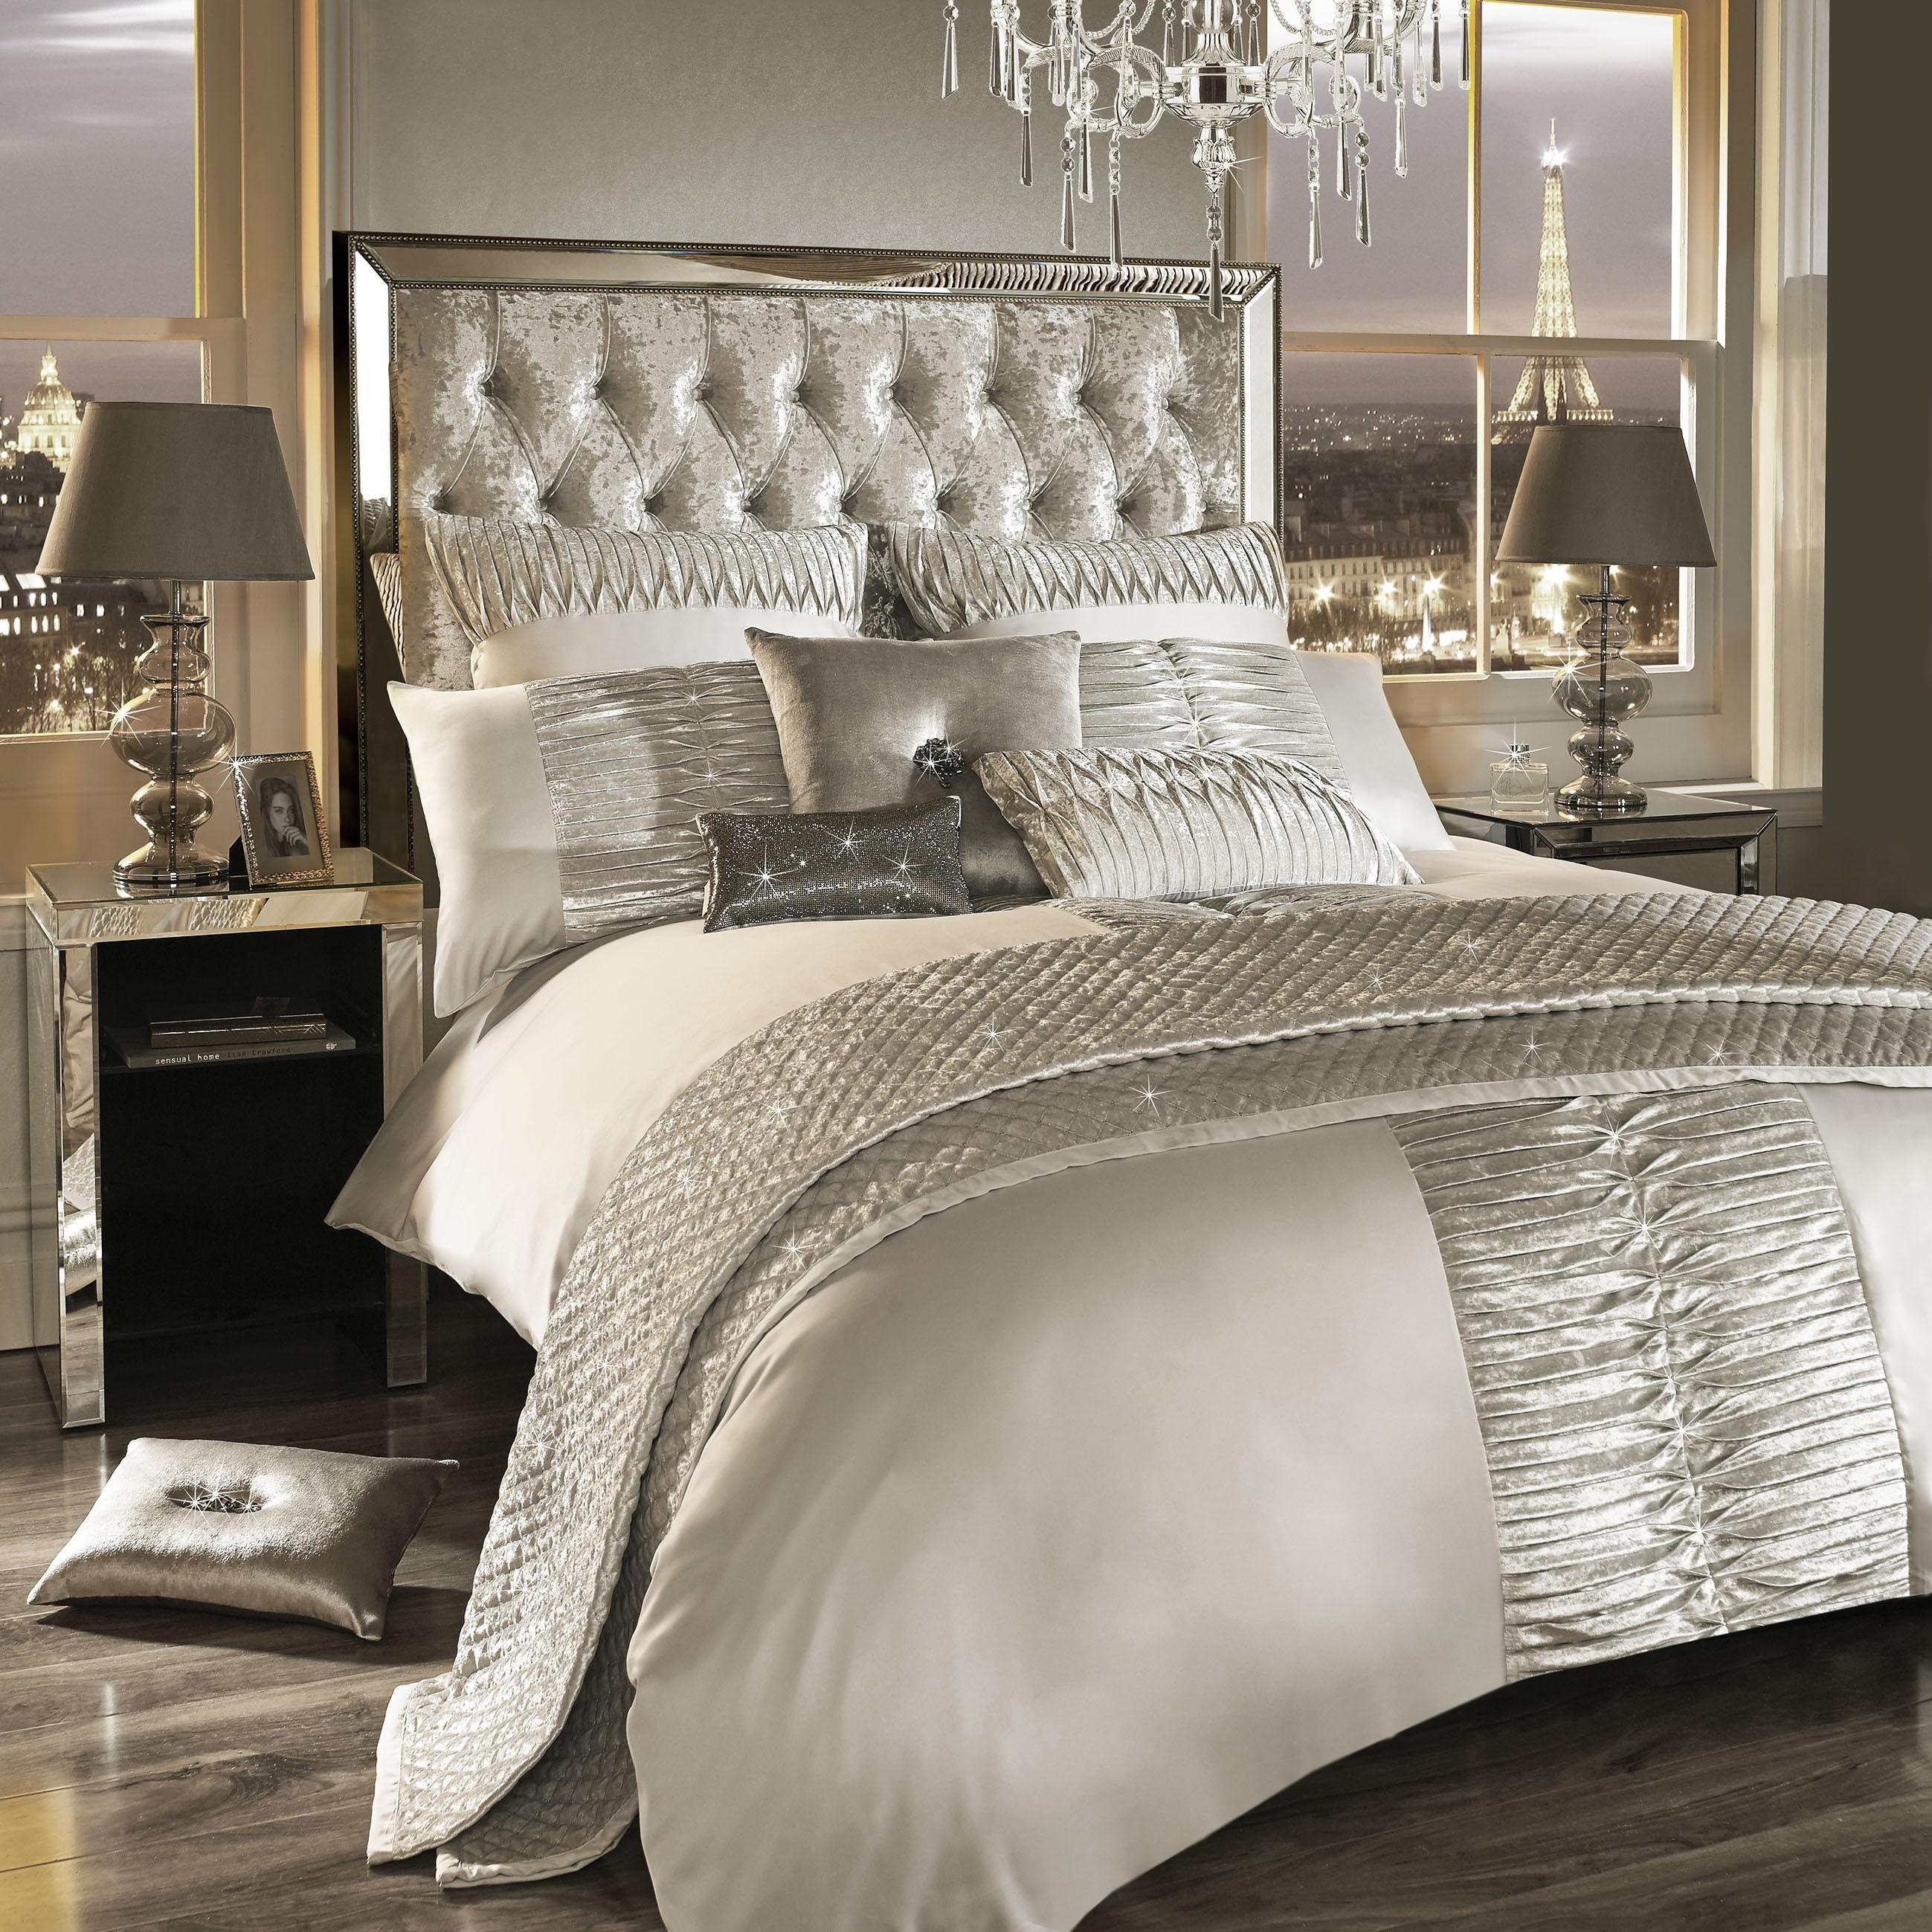 Kylie Minogue Atmosphere Bedding Collection Ivory Ponden